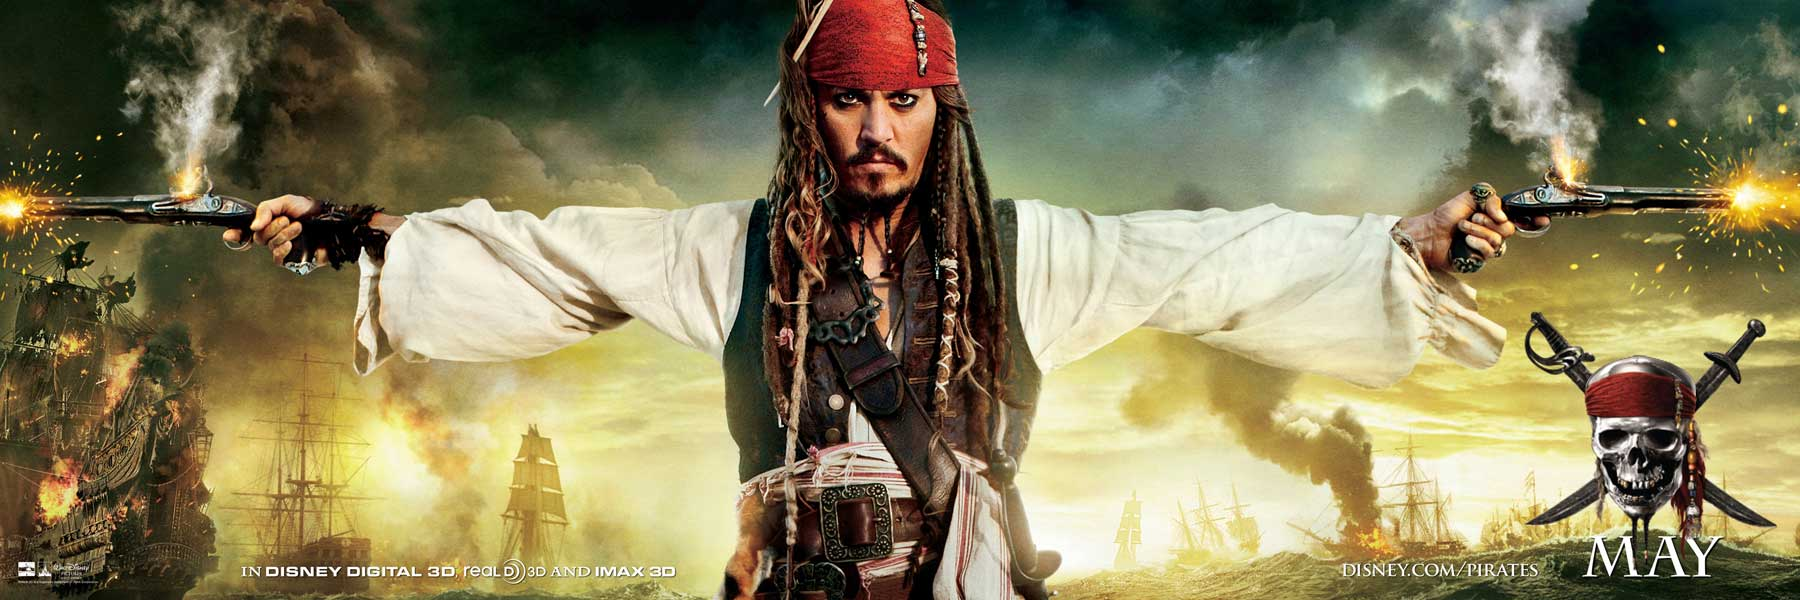 Johnny depp sponged from keith richards for pirates of the johnny depp sponged from keith richards for pirates of the caribbean nme altavistaventures Image collections